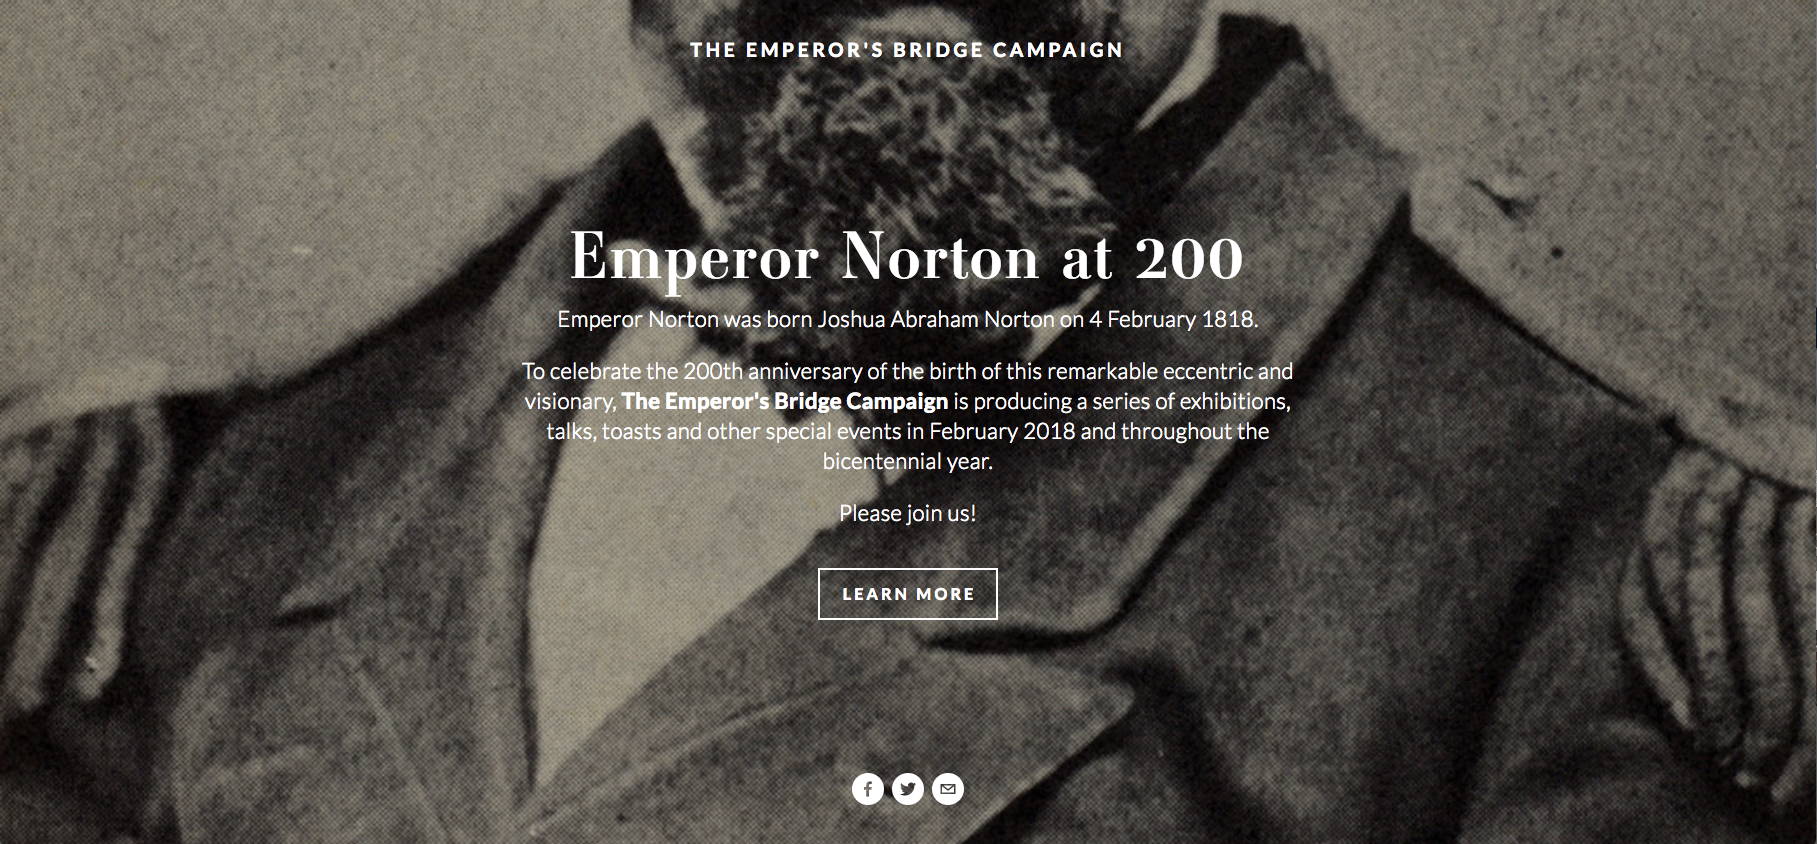 Emperor_Norton_at_200_page.png